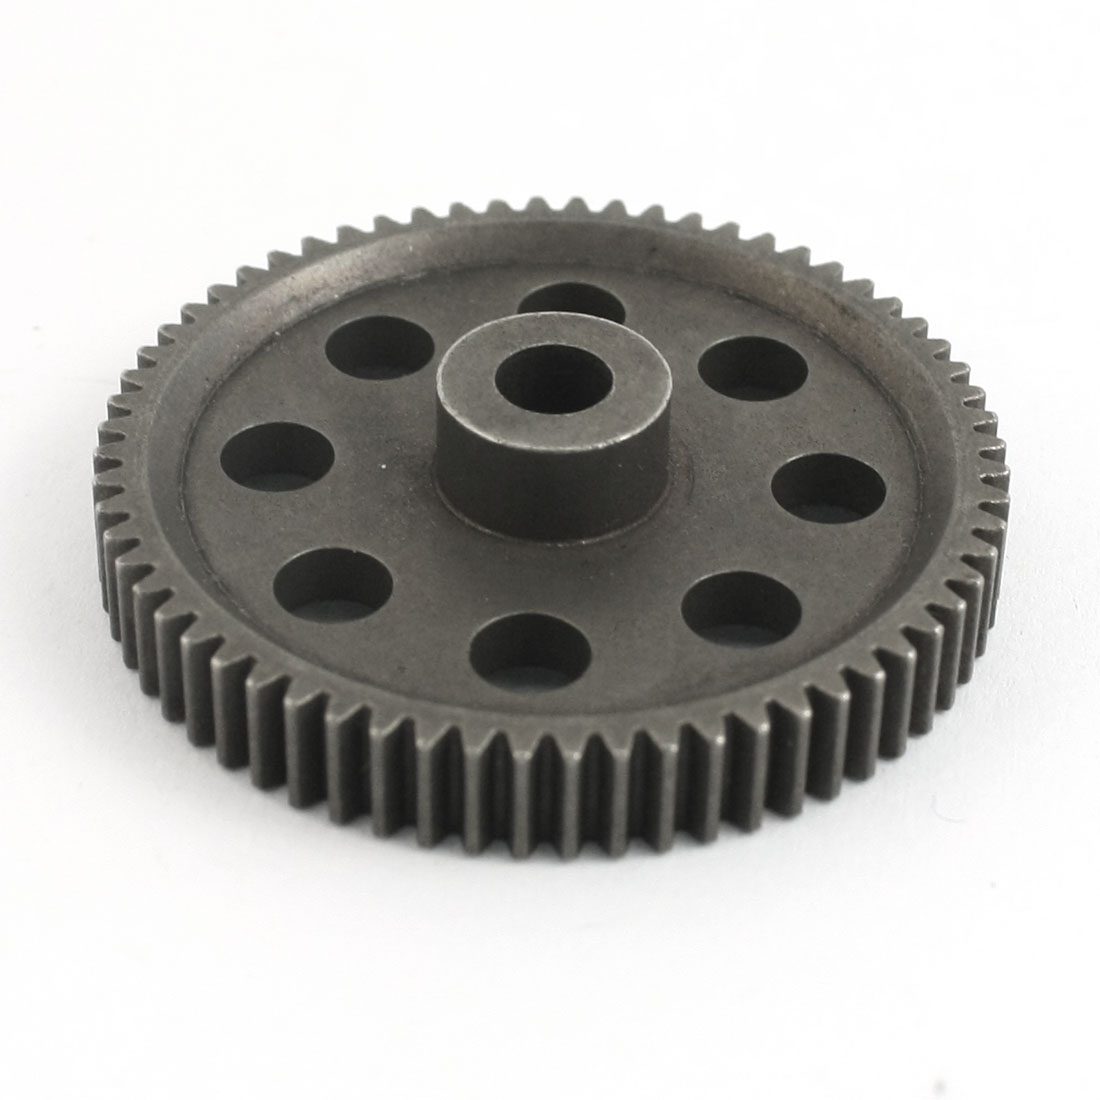 11184 64T Metal Spur Gear Spare Part for 94111 94107 94123 1/10 RC Model Car Buggy